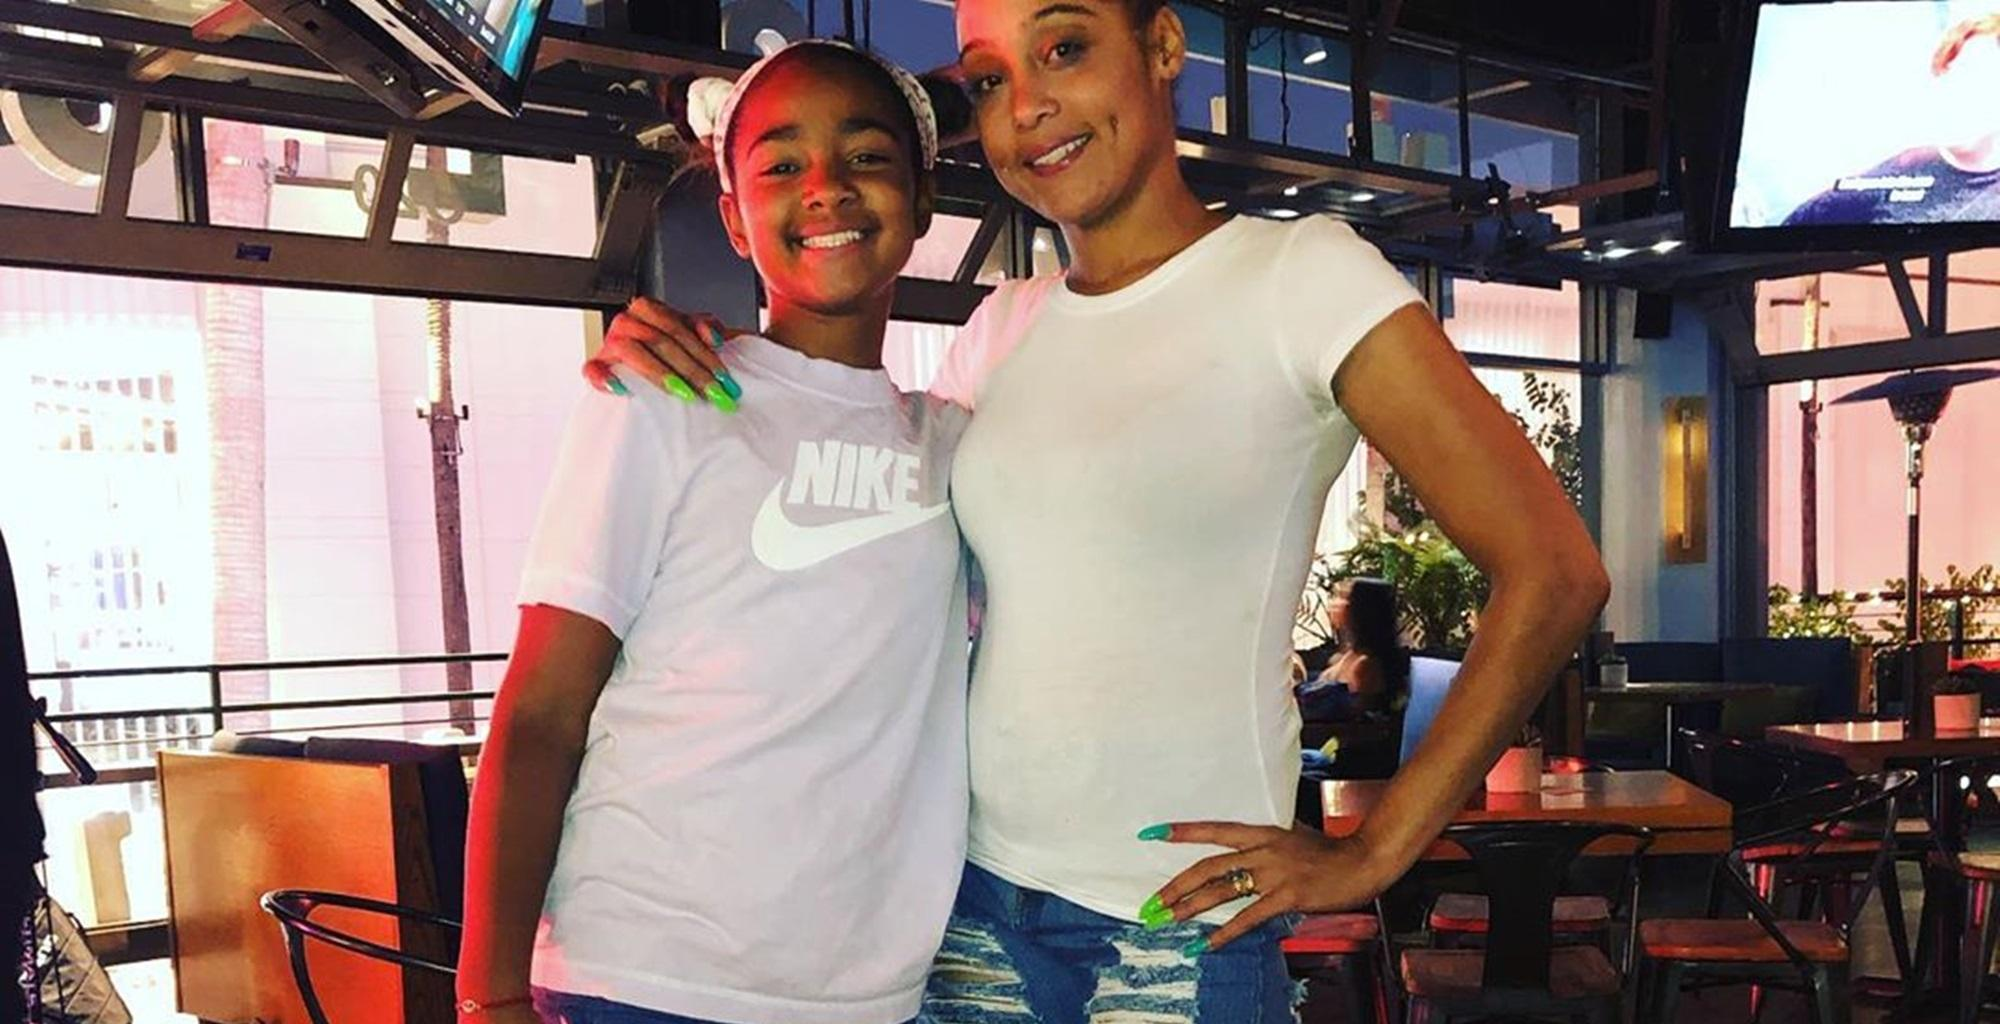 Tanisha Foster, AKA Chyna Hussle, Has Lost Custody Of Nipsey Hussle's Daughter, These Three Family Members Will Care For Emani Asghedom